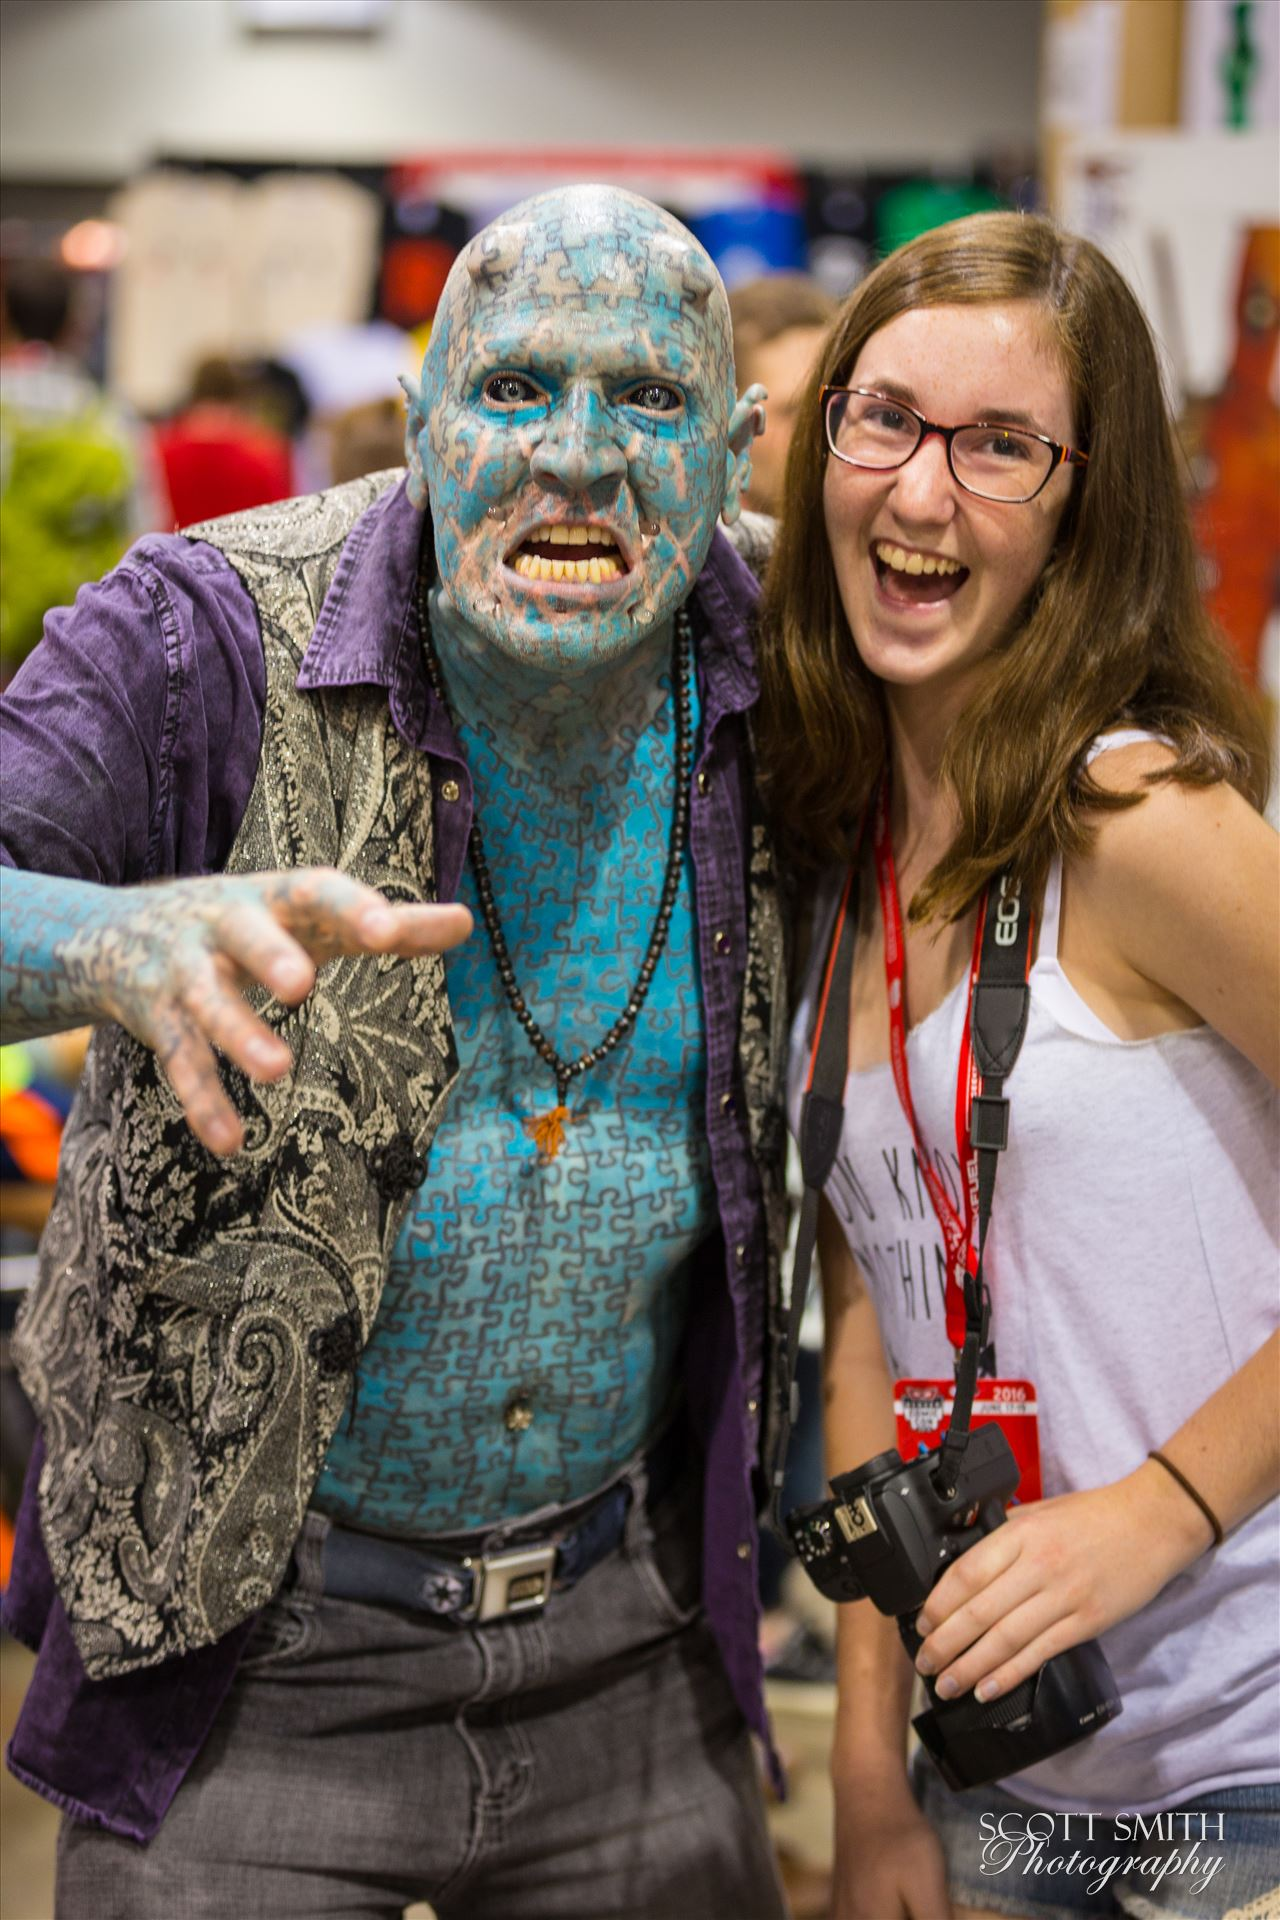 Denver Comic Con 2016 32 - Denver Comic Con 2016 at the Colorado Convention Center. The Enigma with my daughter. by Scott Smith Photos